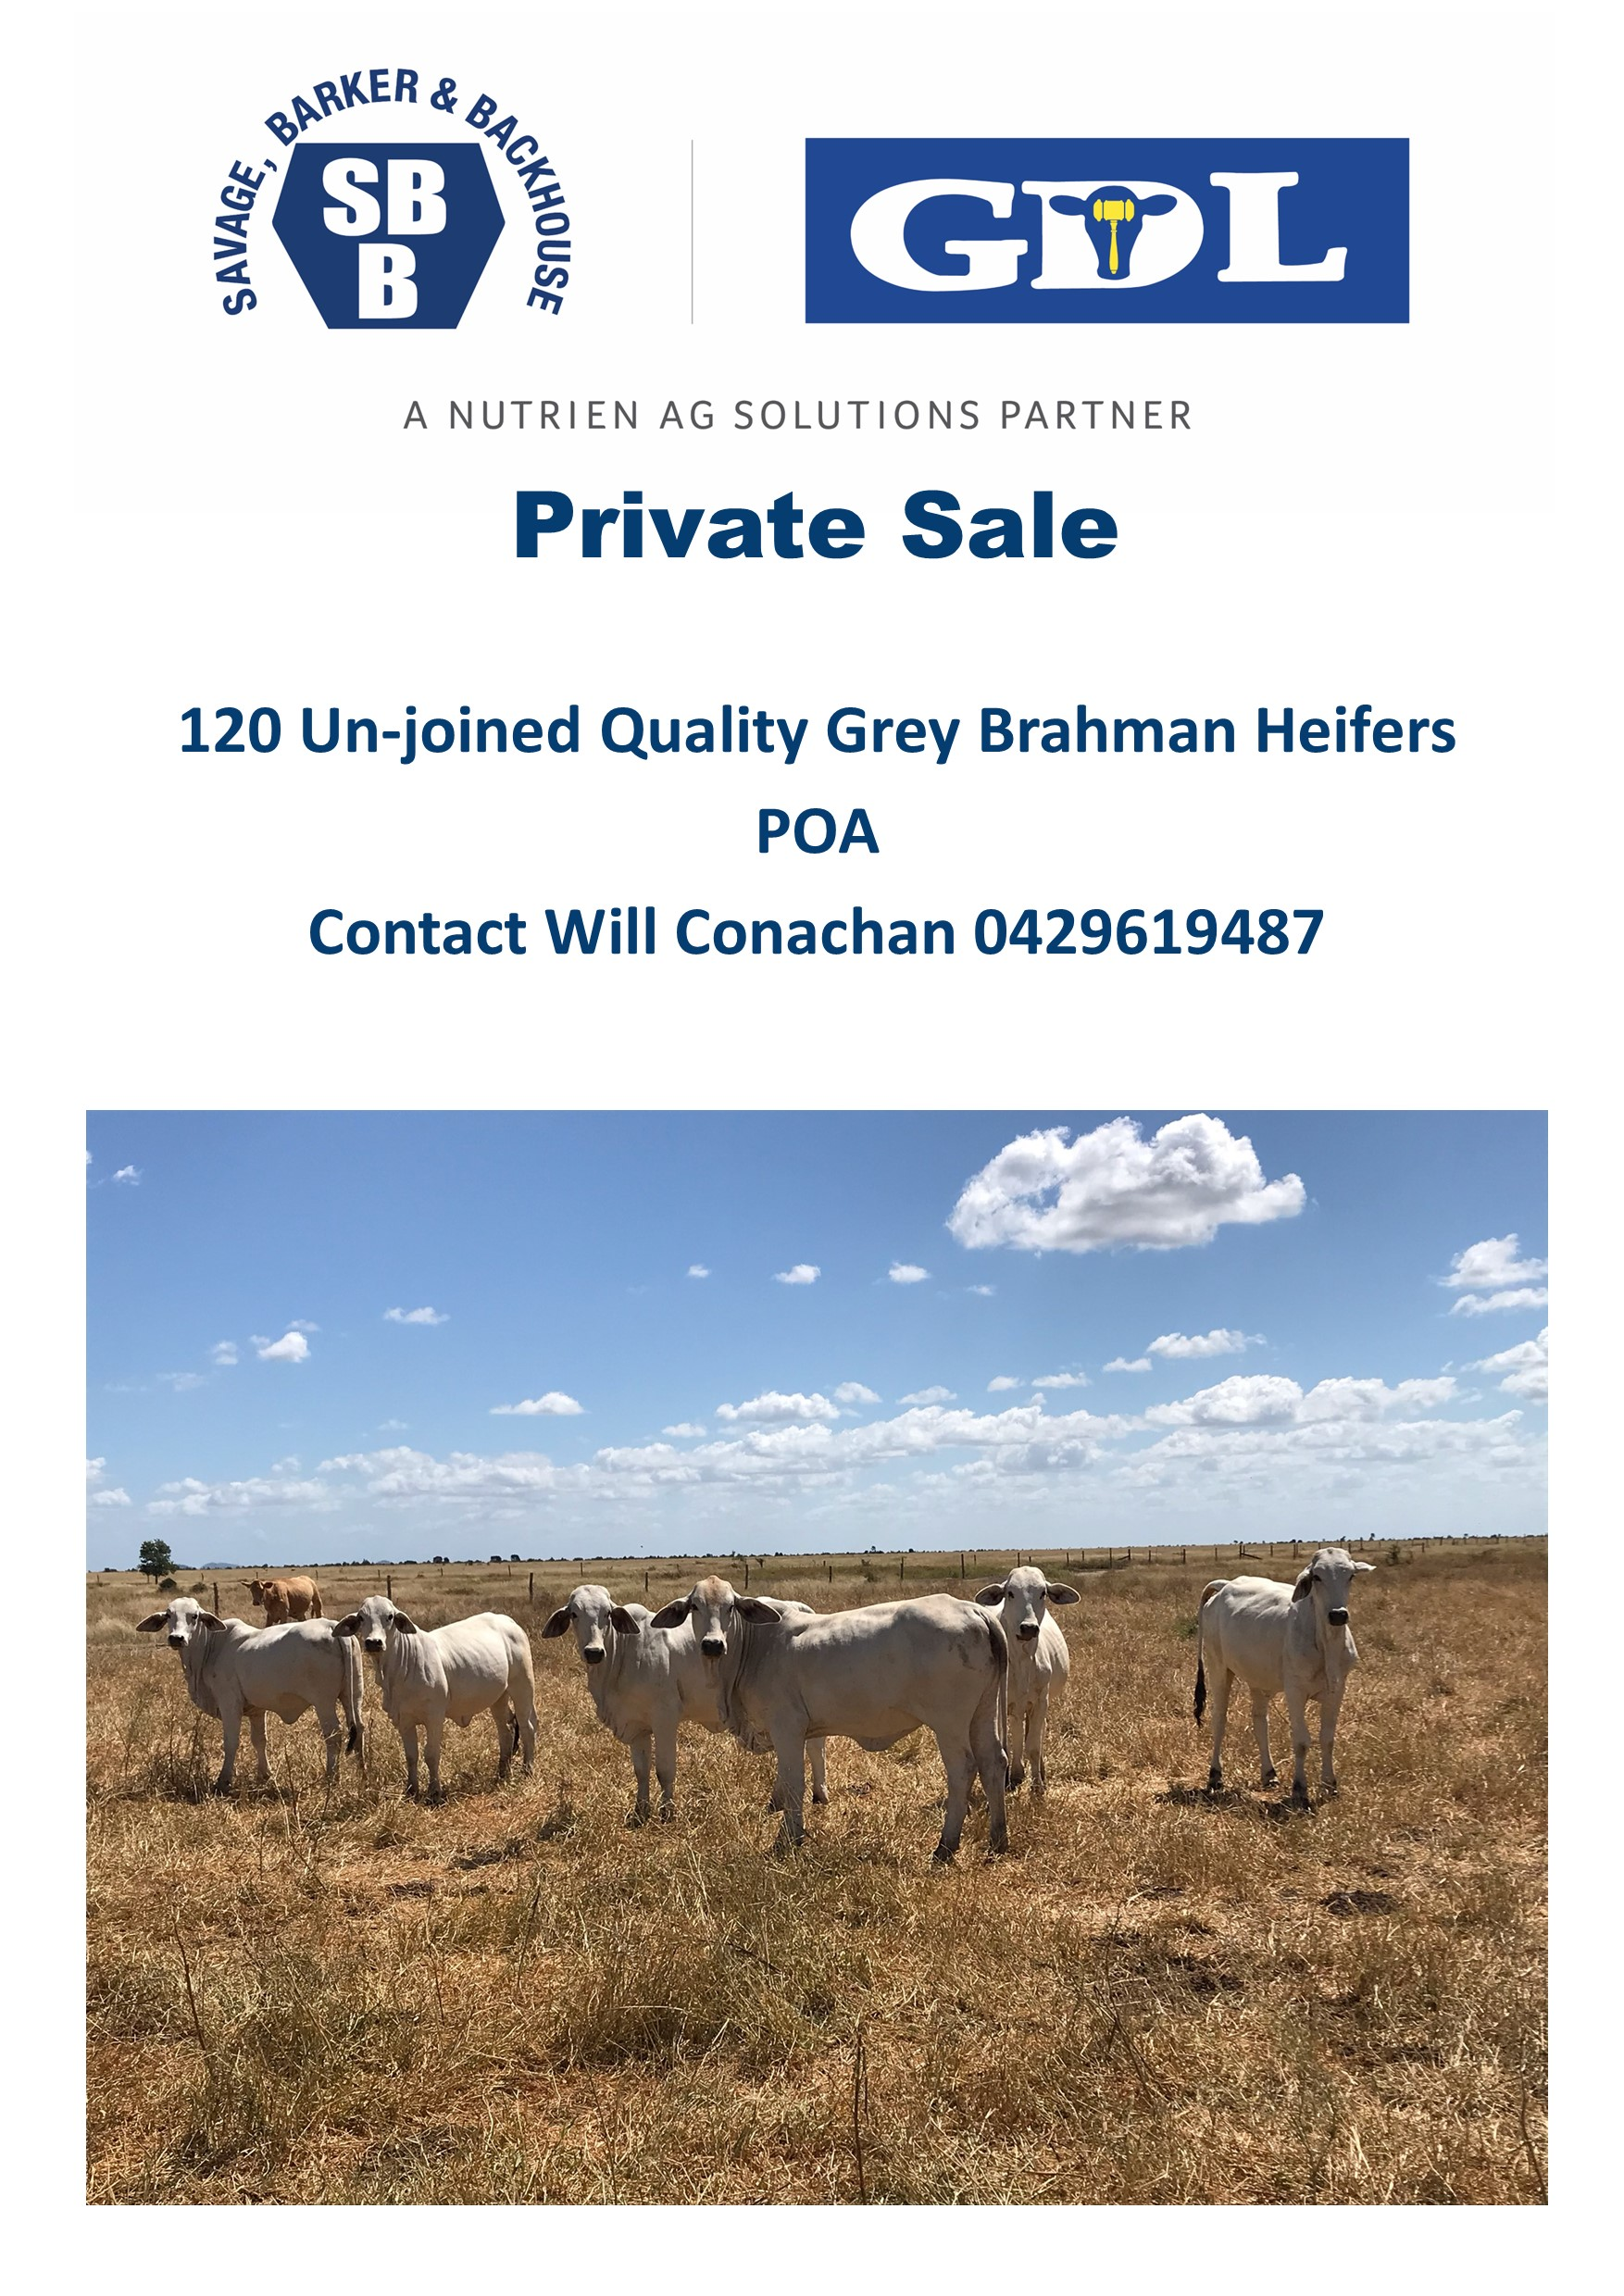 Private Sale – 120 Unjoined Quality Grey Brahman Heifers